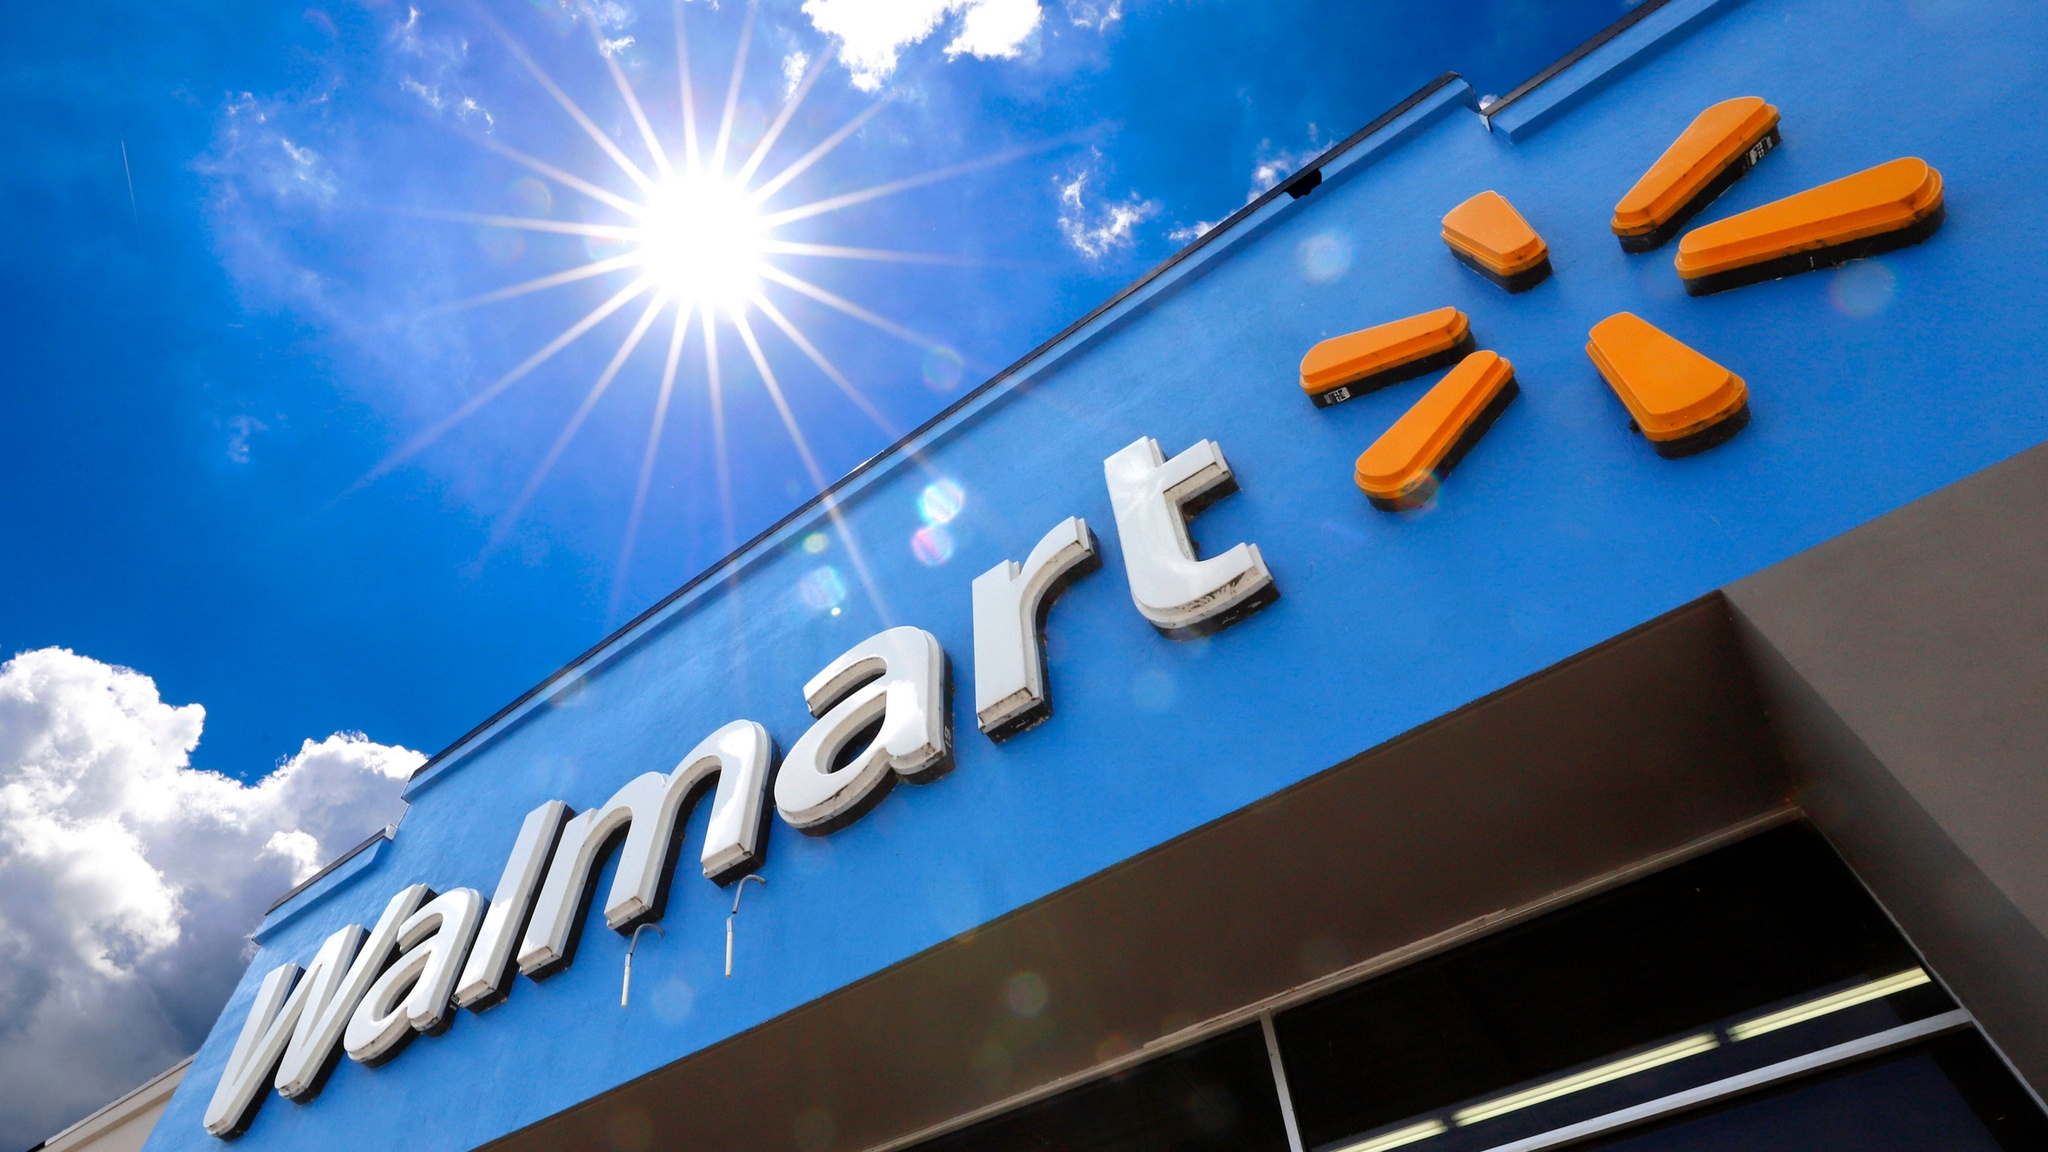 US retail outlook brightens with Walmart and new data